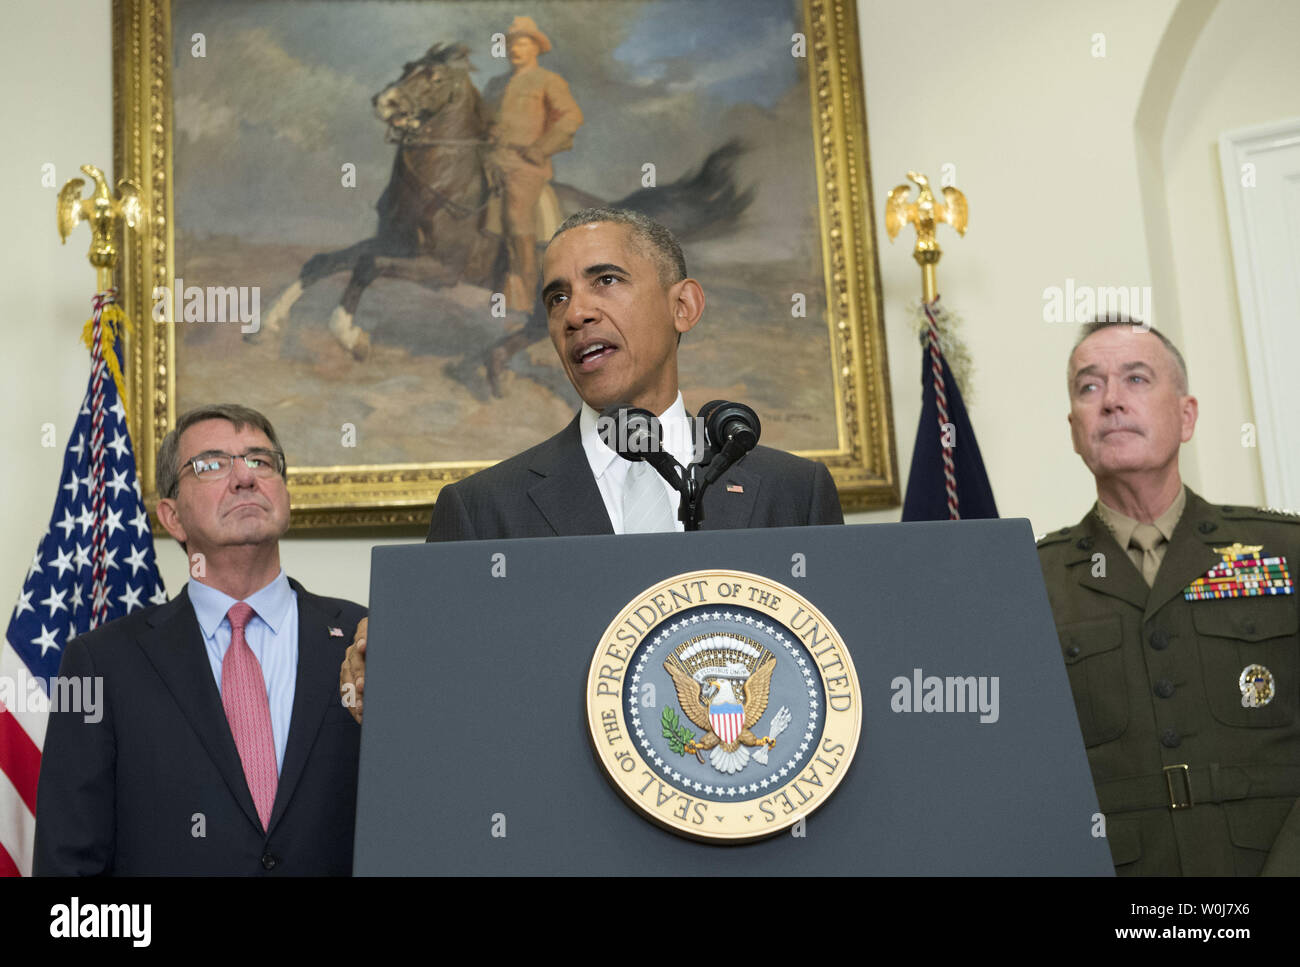 President Barack Obama, joined by Defense Secretary Ash Carter (L) and Chairman of the Joint Chiefs of Staff Marine Gen. Joseph Dunford, announces that the United States will leave more troops in Afghanistan than originally planned through the end of the year, in the Roosevelt Room at the White House in Washington, D.C. on July 6, 2016. Obama announced a draw down of troops to 8,400 by the end of his administration. Photo by Kevin Dietsch/UPI Stock Photo